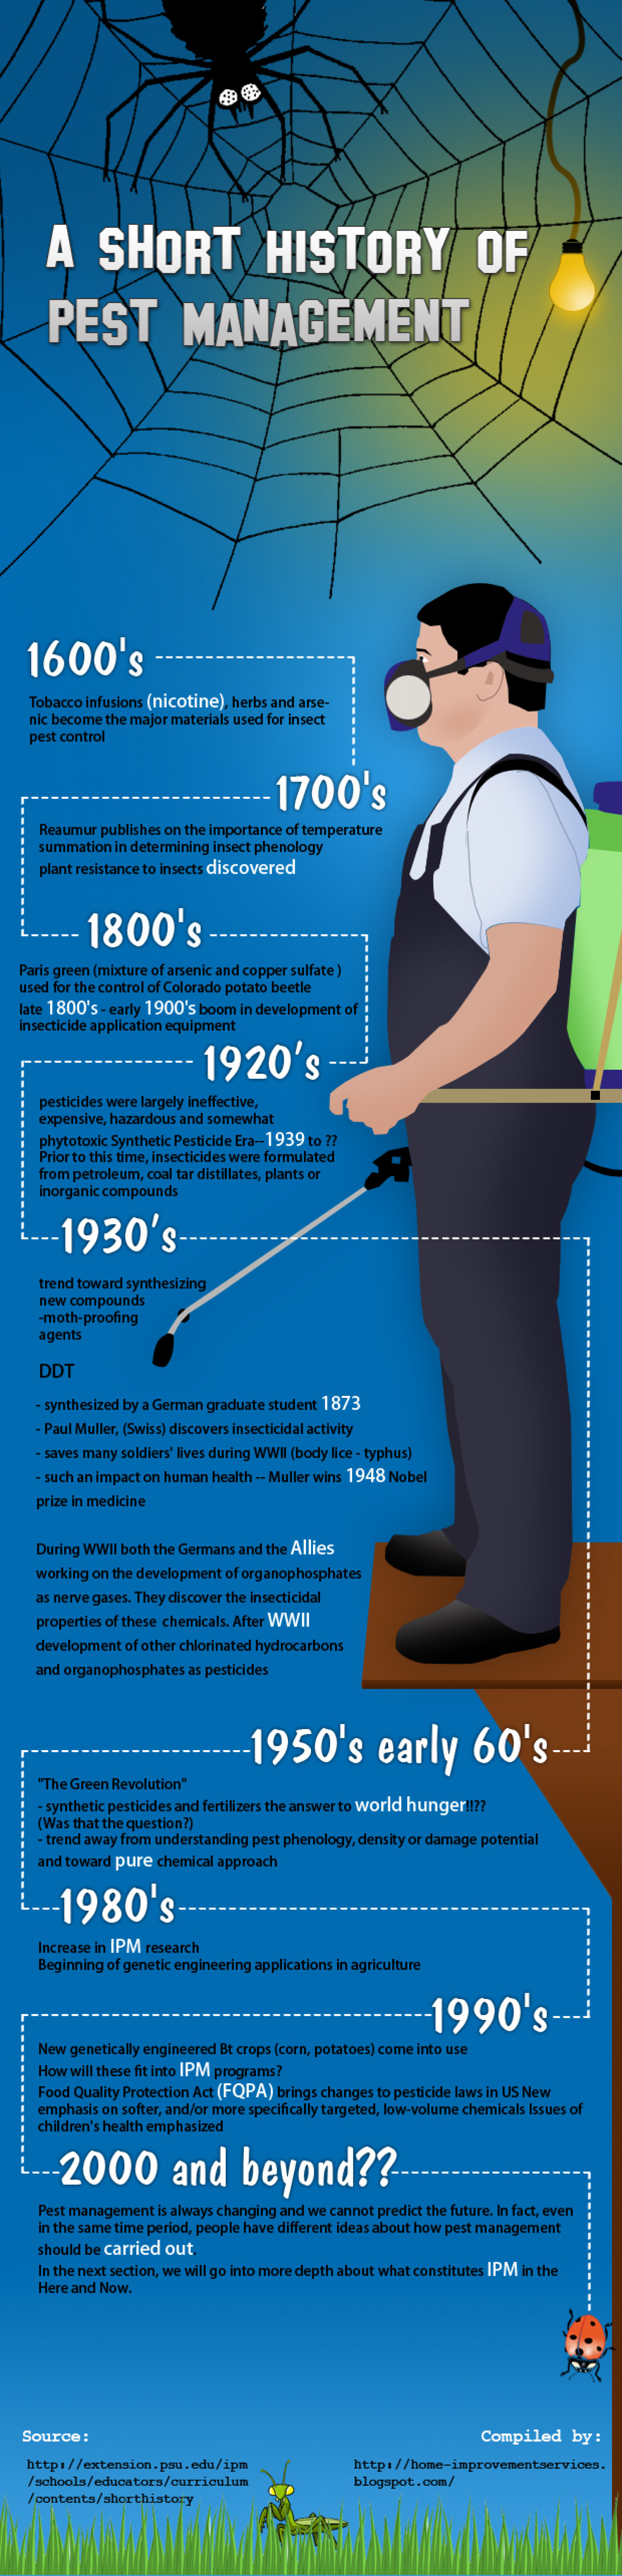 A Short History of Pest Management Infographic